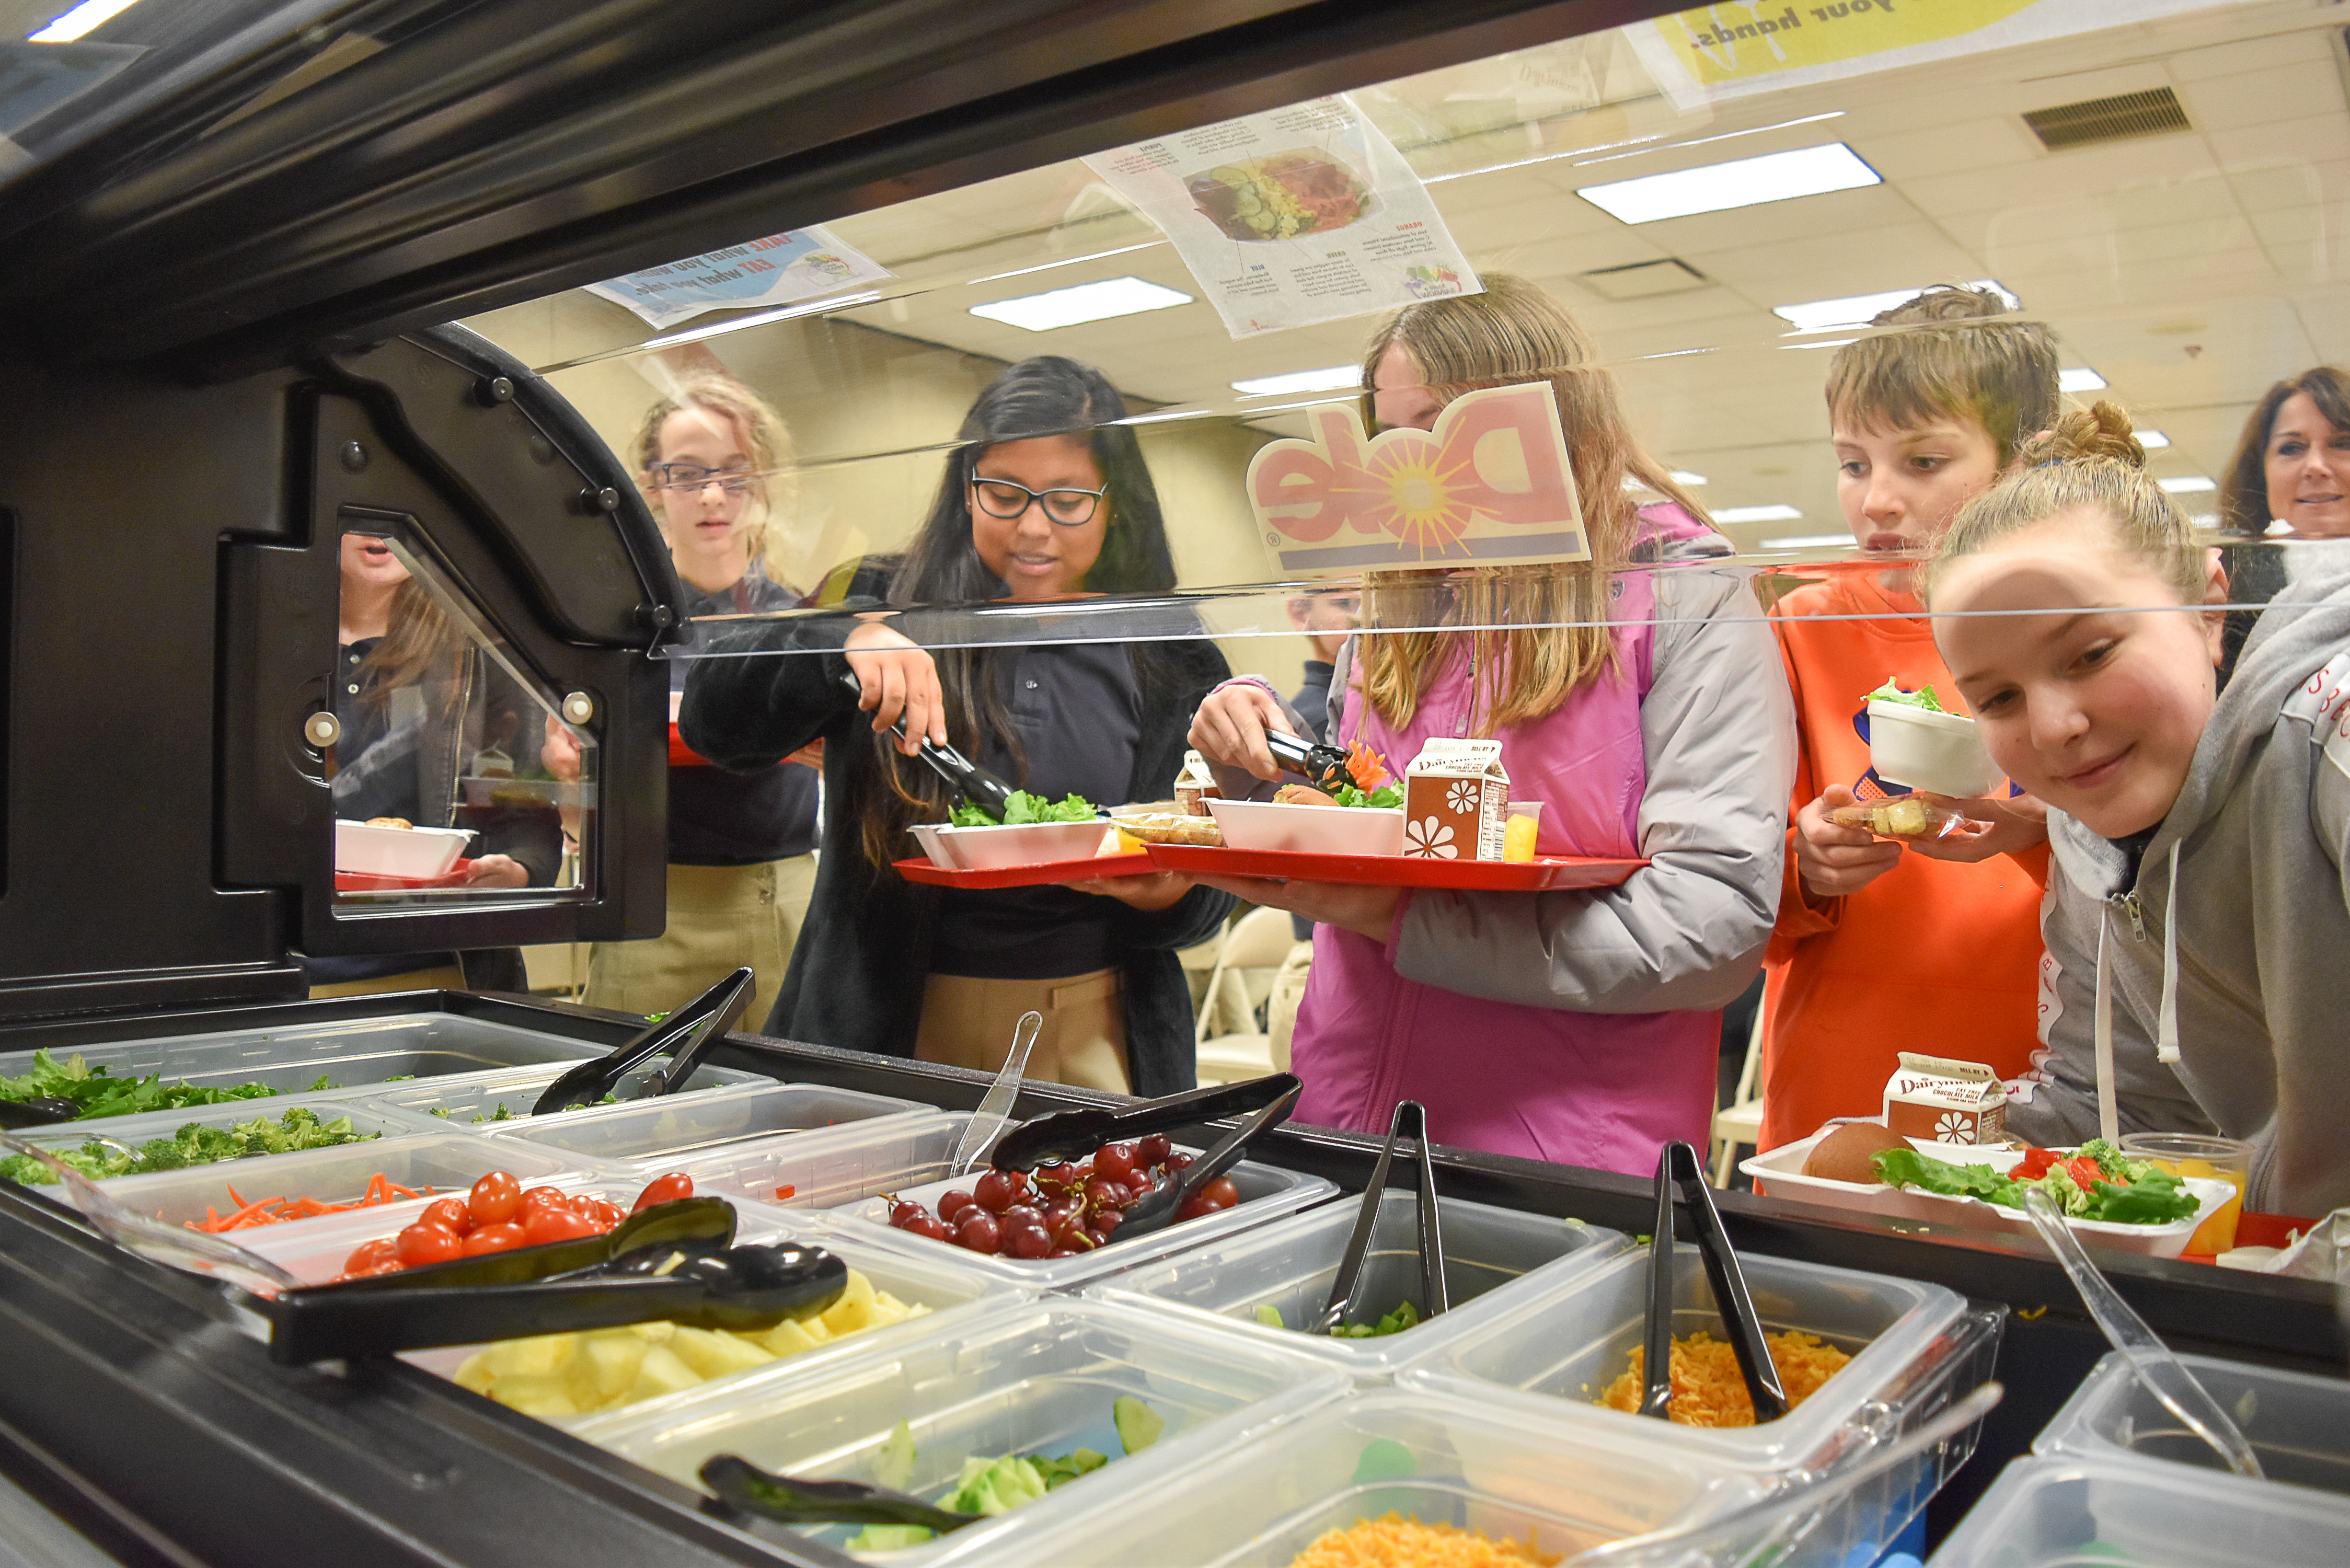 Astounding Cleveland Area School Unveils New Salad Bar Donated By Dole Interior Design Ideas Inamawefileorg